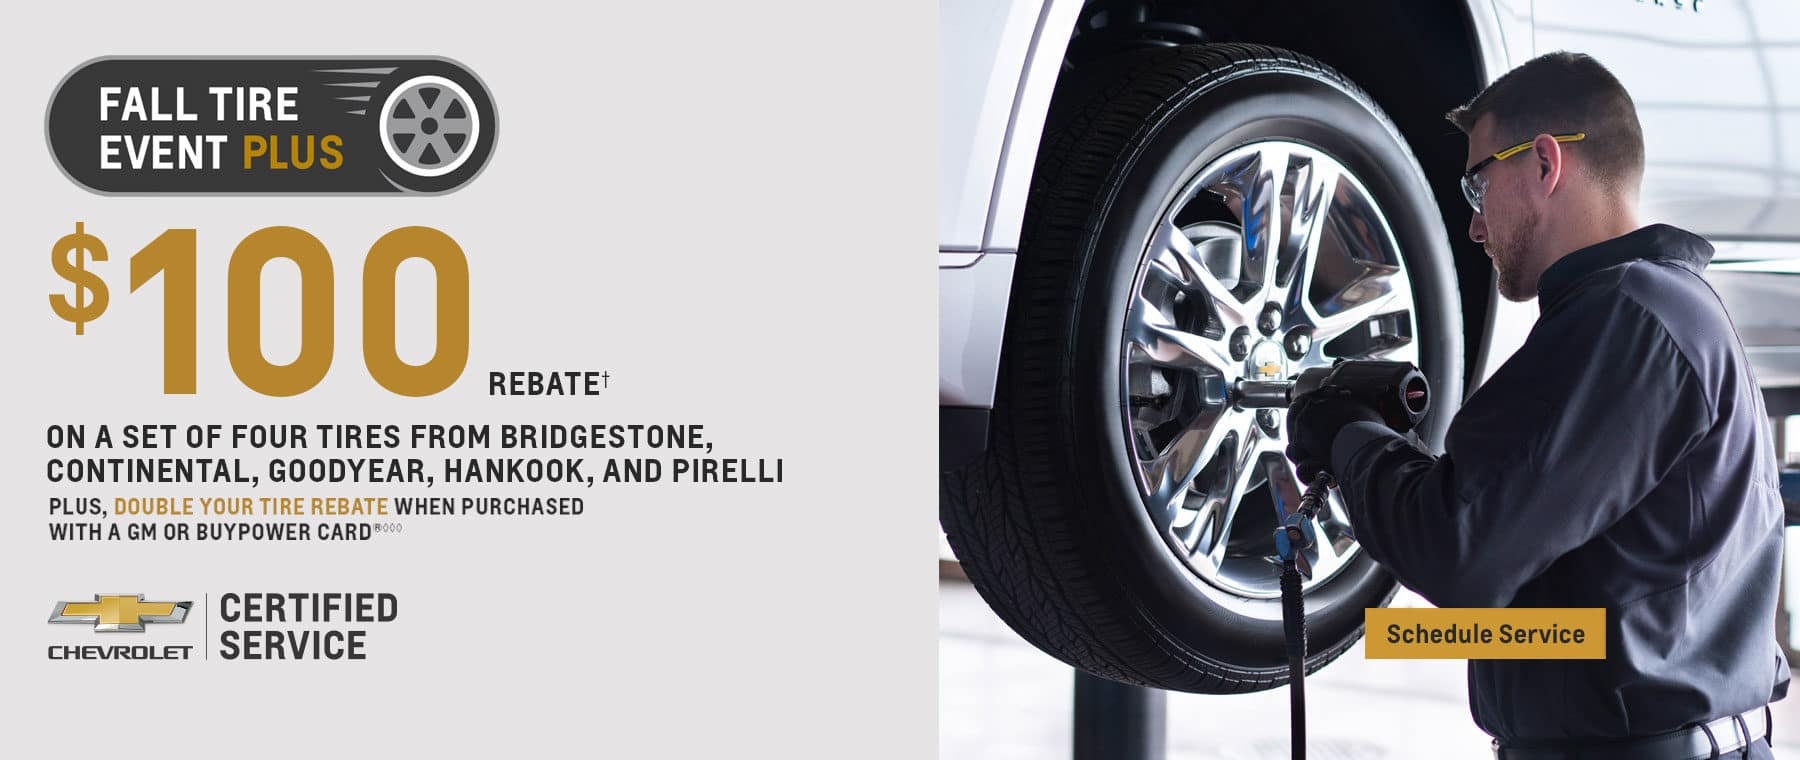 Fall Service Event $100 rebate on a set of four tires from bridgestone, continental, goodyear, hankook, and pirelli